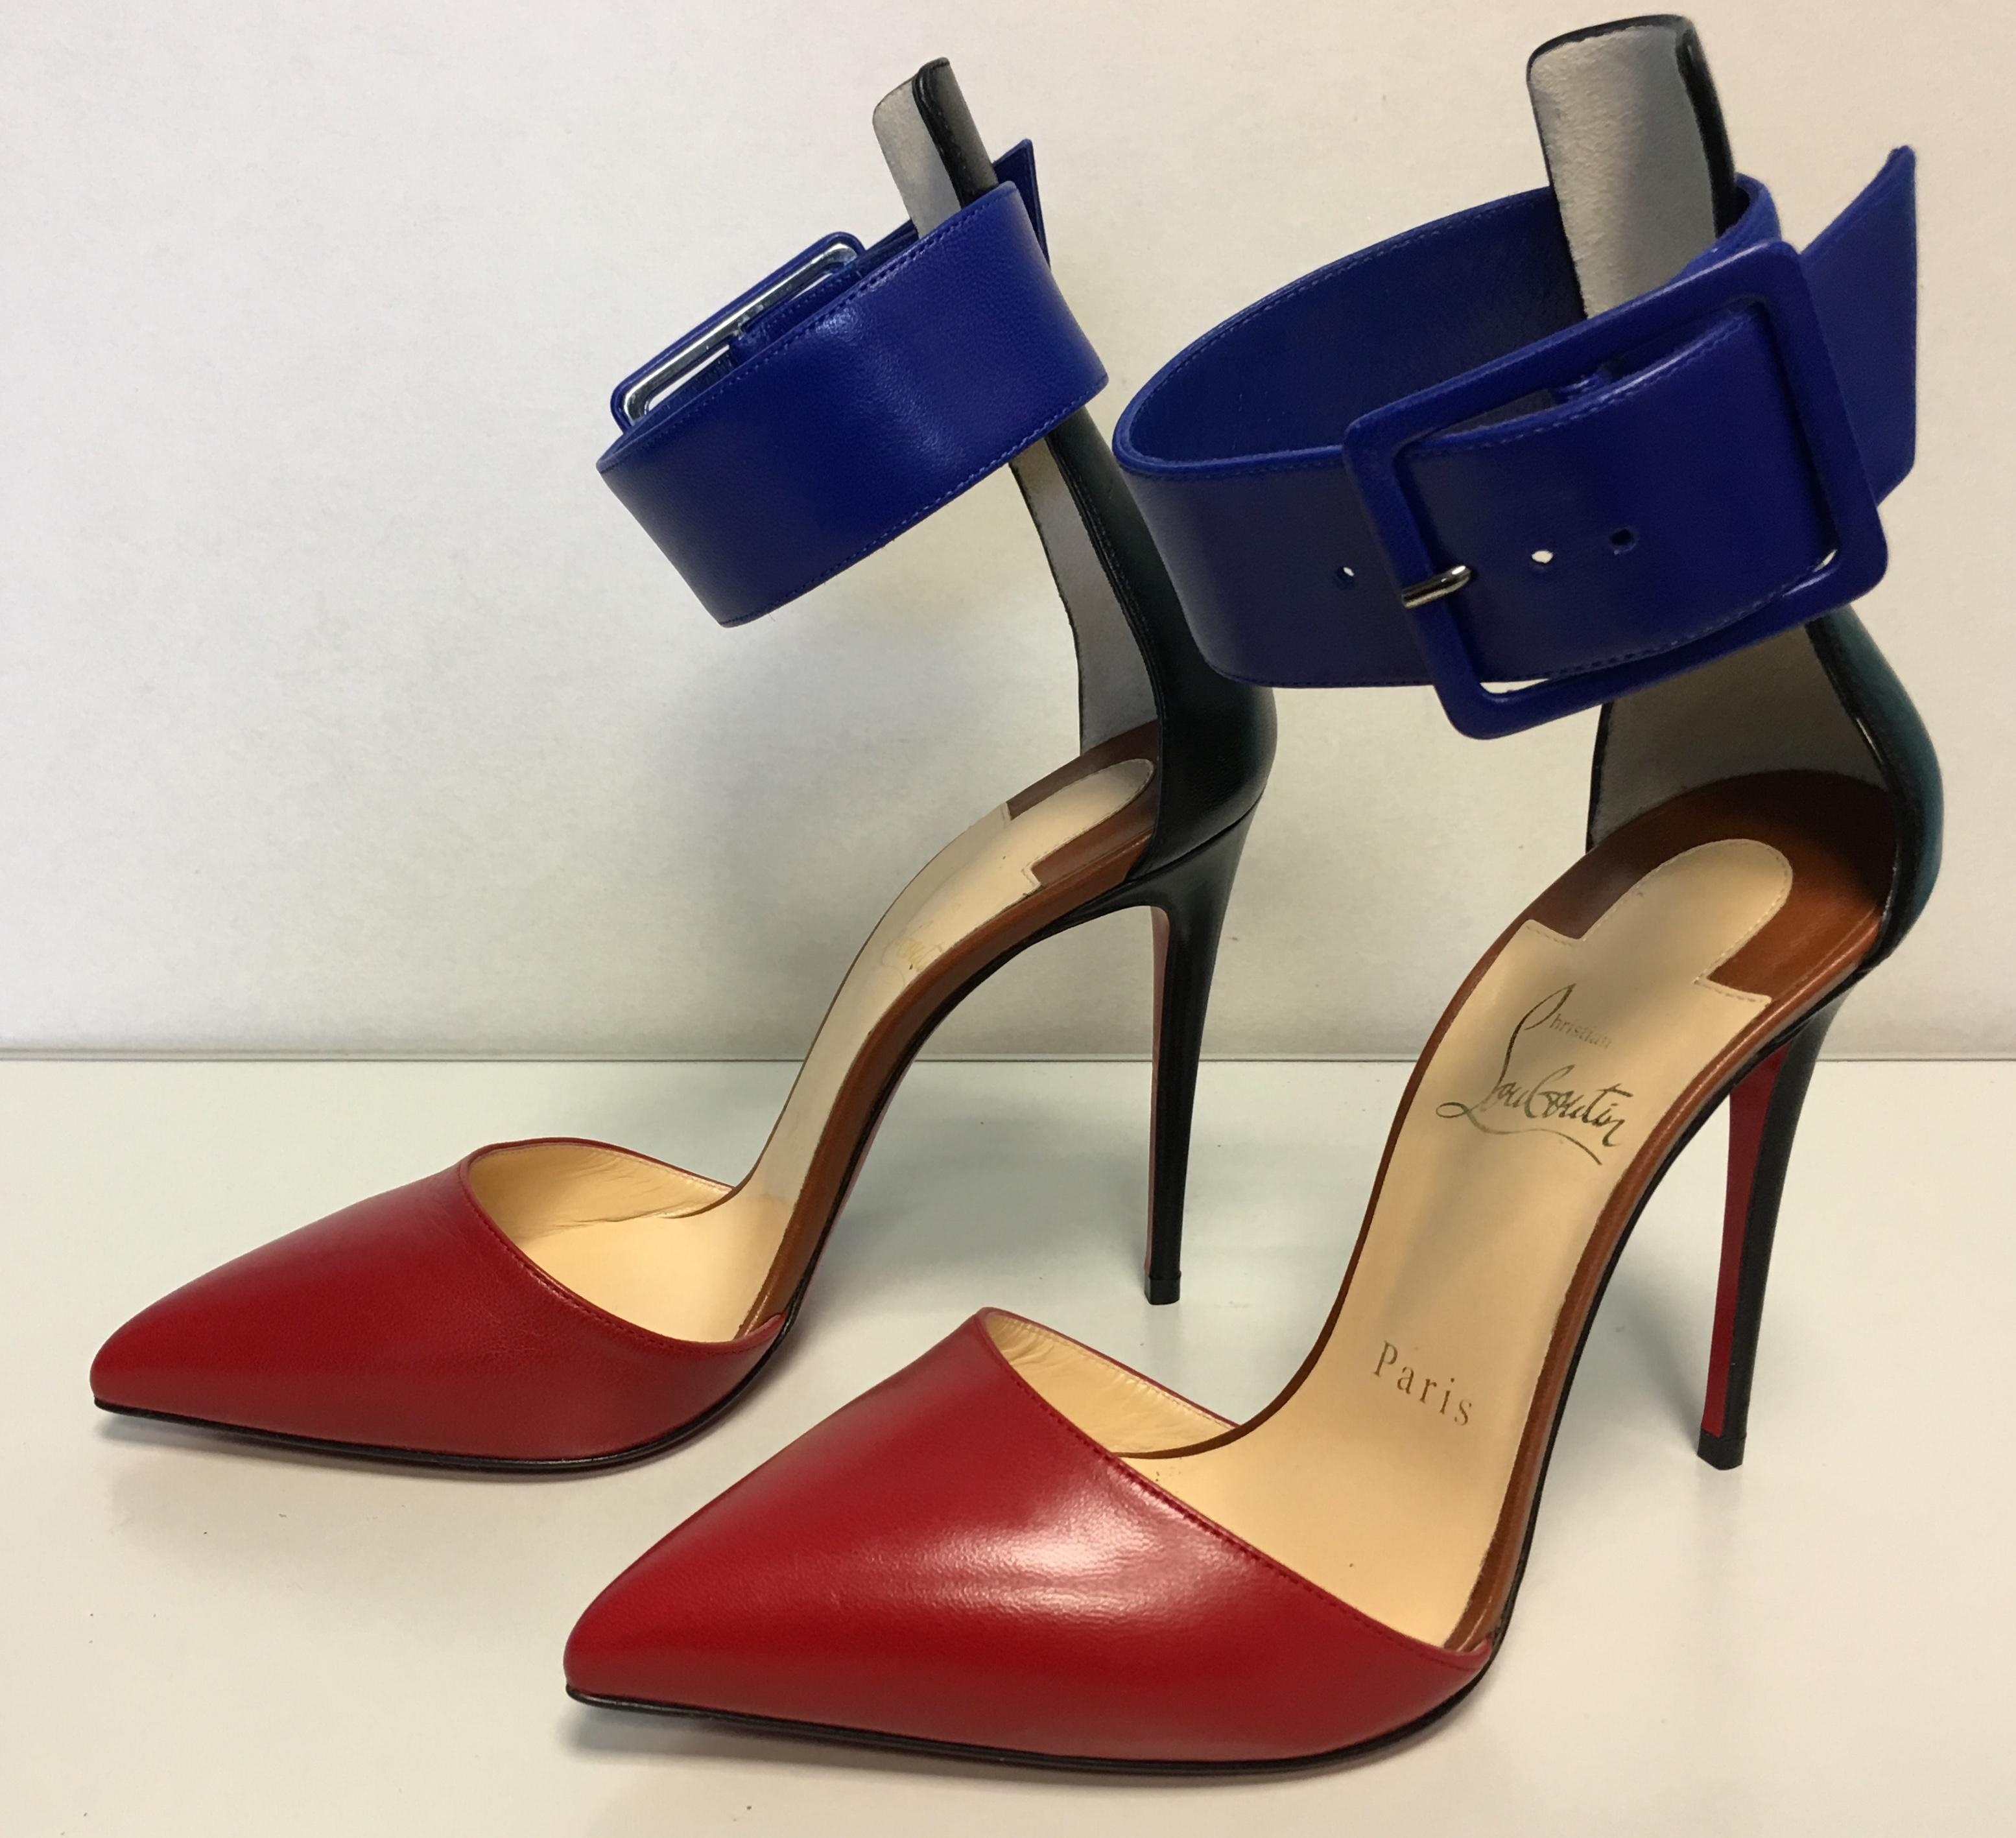 5e54b31b69b5 ... Christian Louboutin Multicolor Classic Harler 100mm Ankle Cuff D orsay  D orsay D  ...